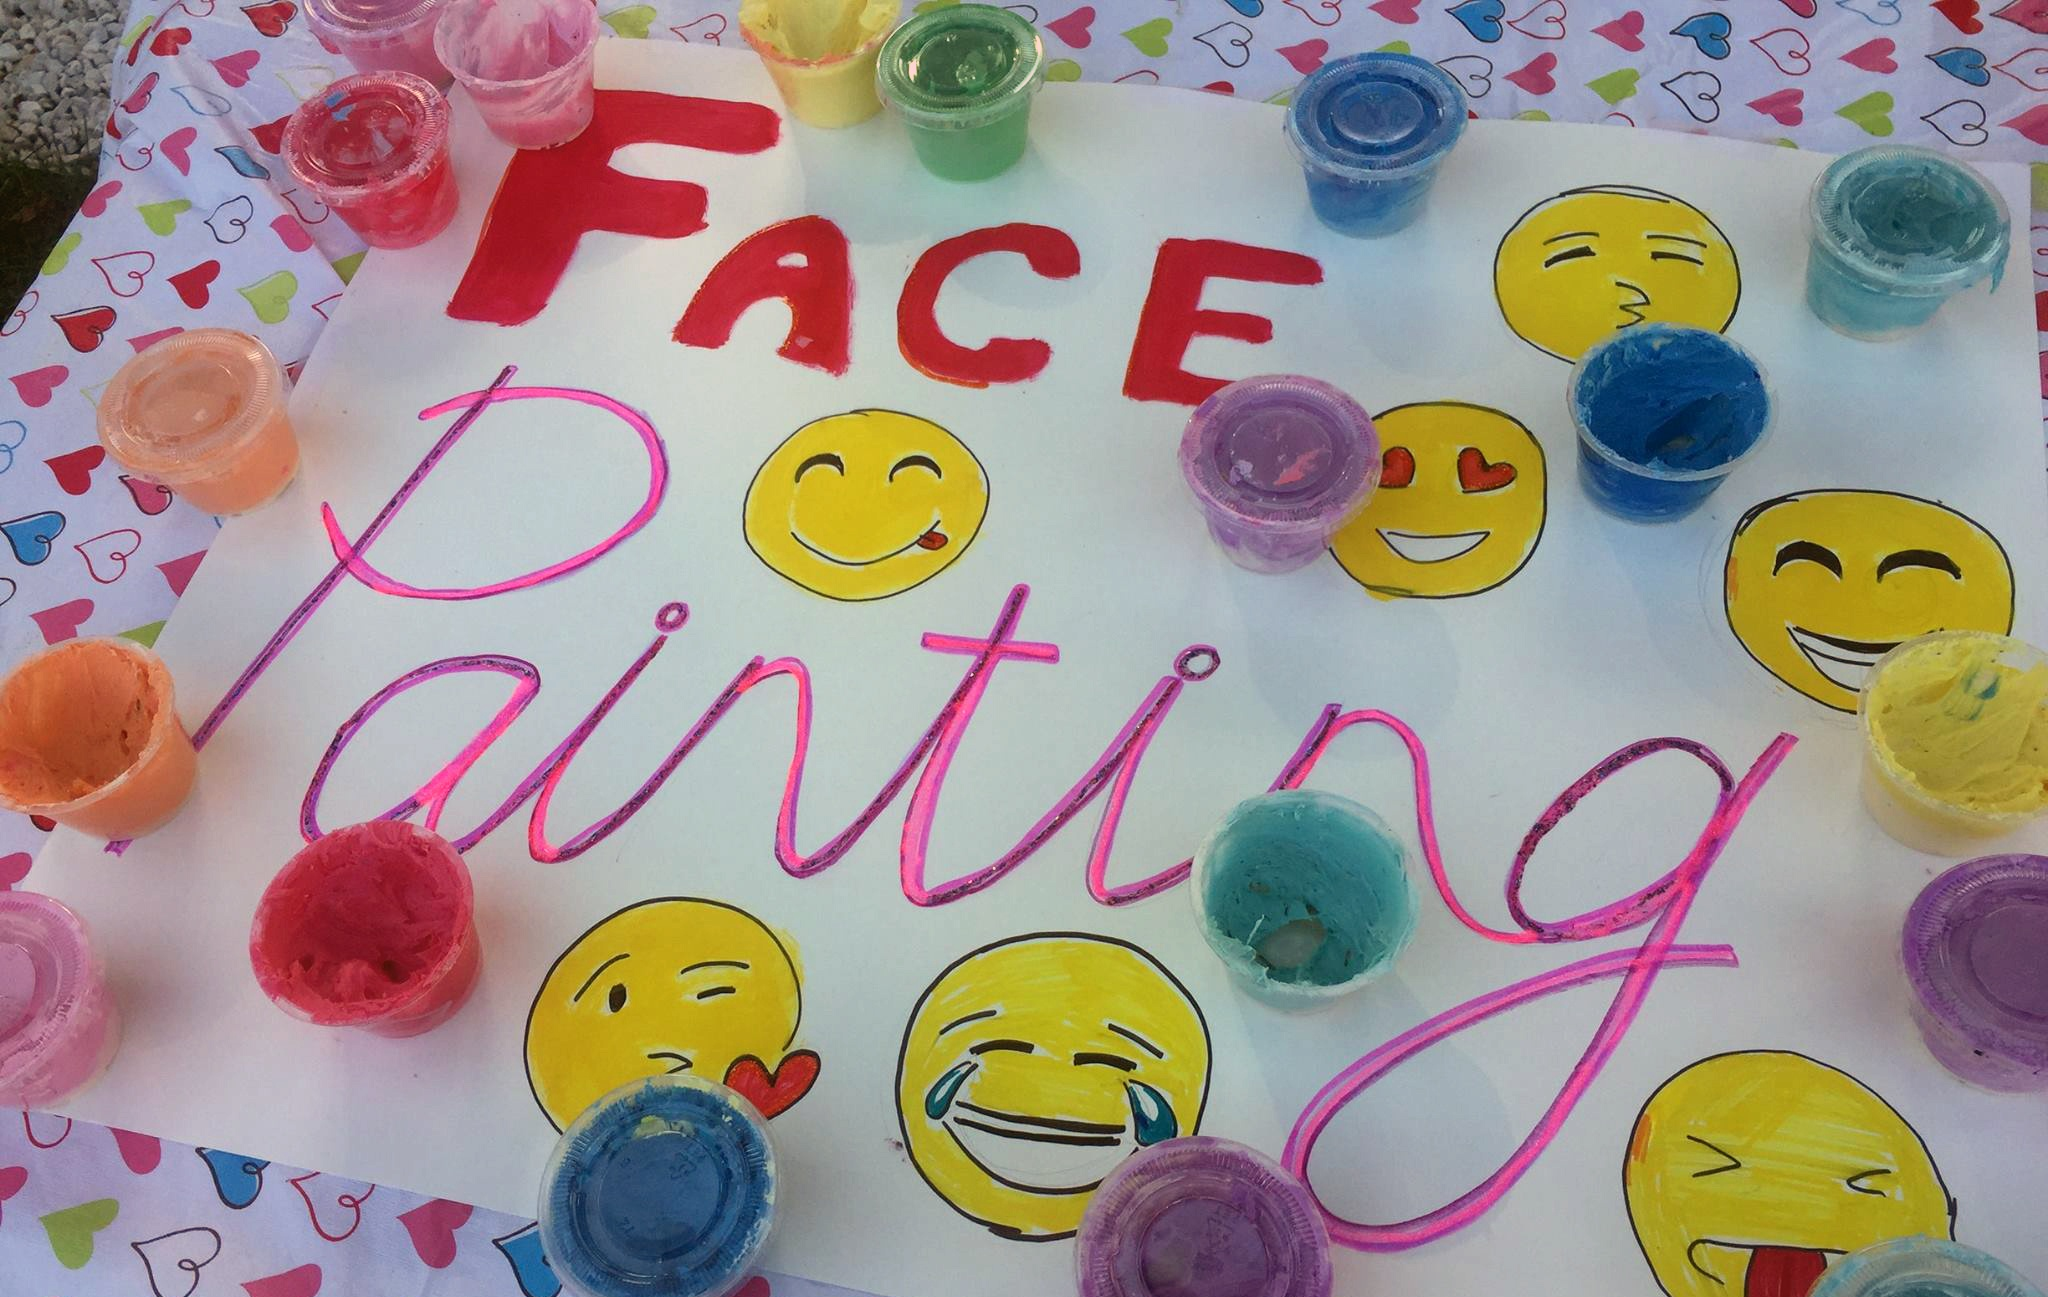 Face painting: sign and supplies